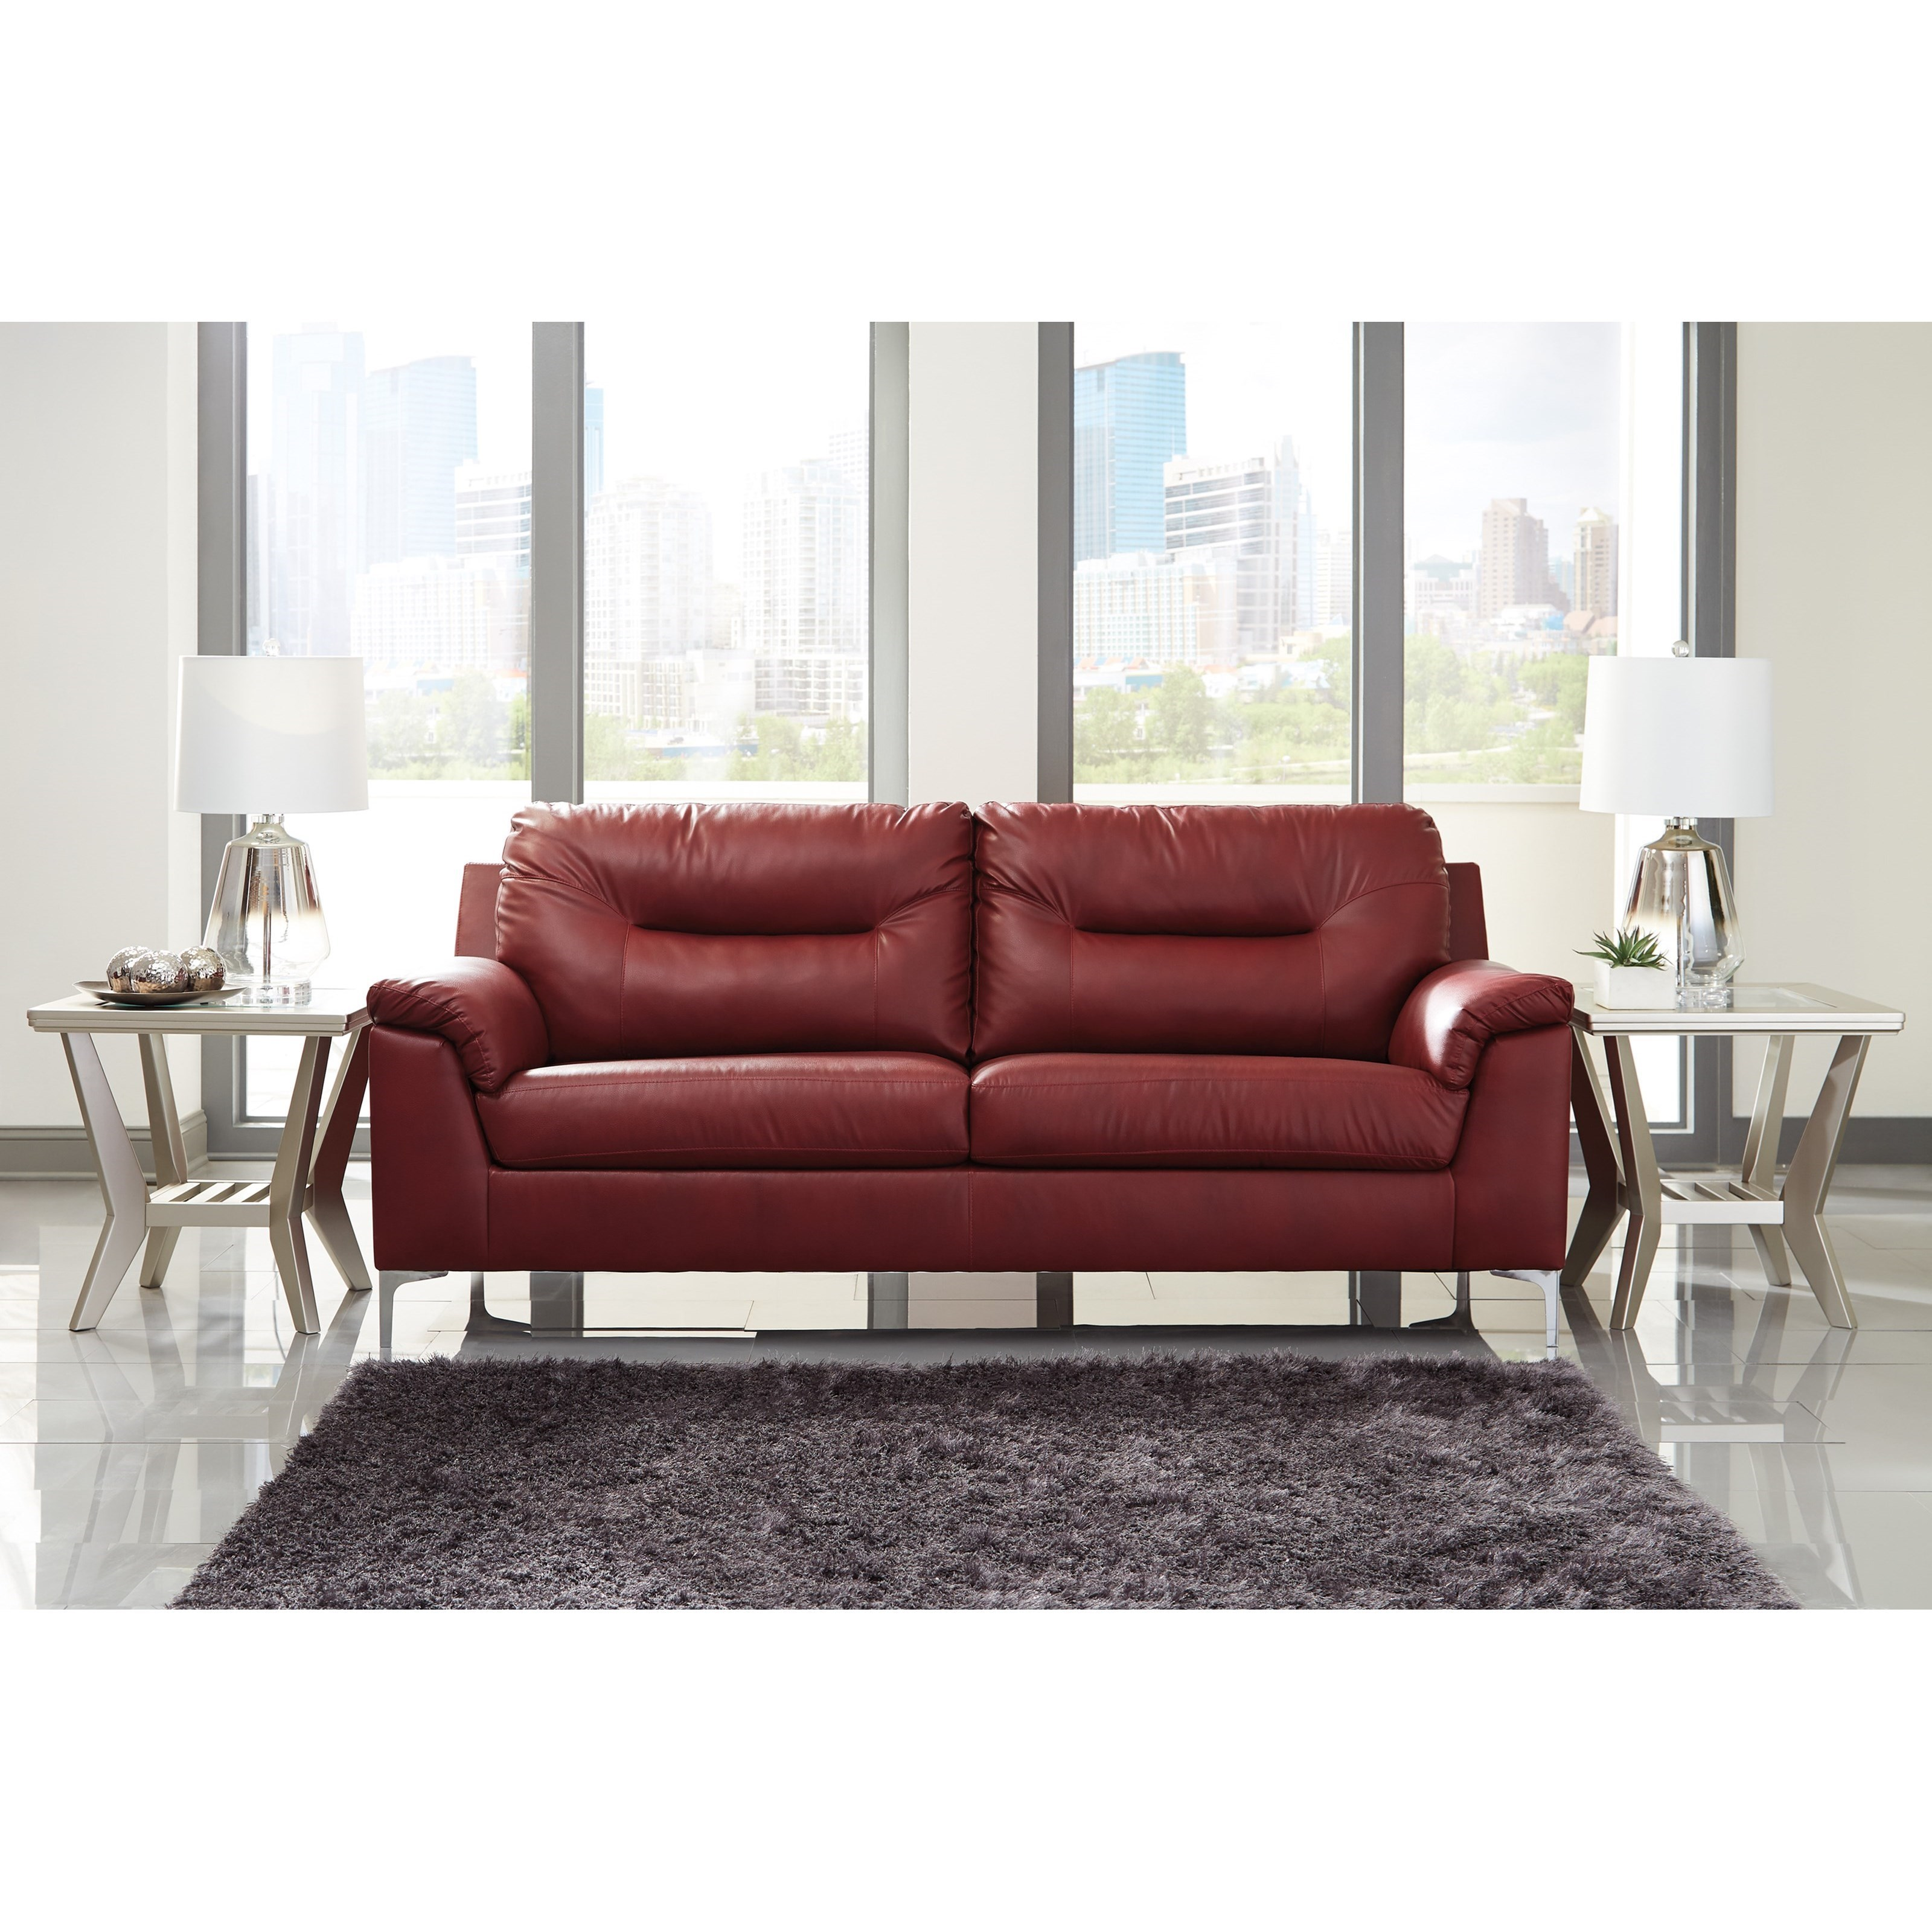 Design Couch Tensas Contemporary Sofa With Pillow Arms By Signature Design By Ashley At Northeast Factory Direct